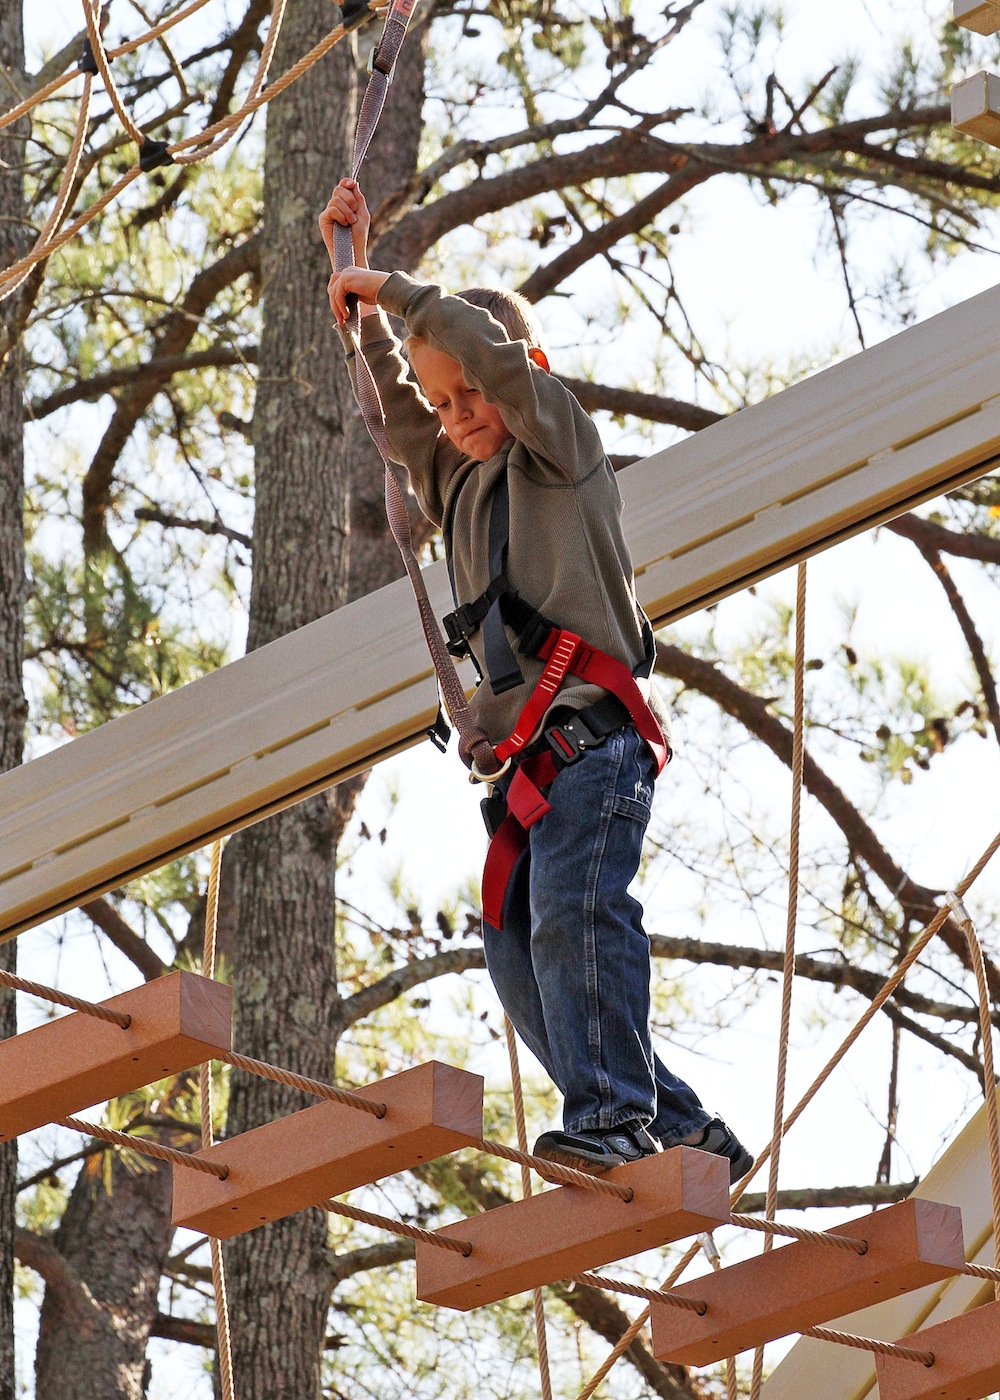 sky high safari at riverbanks zoo and garden columbia home garden children must be at least 48 inches tall to participate out parent supervision